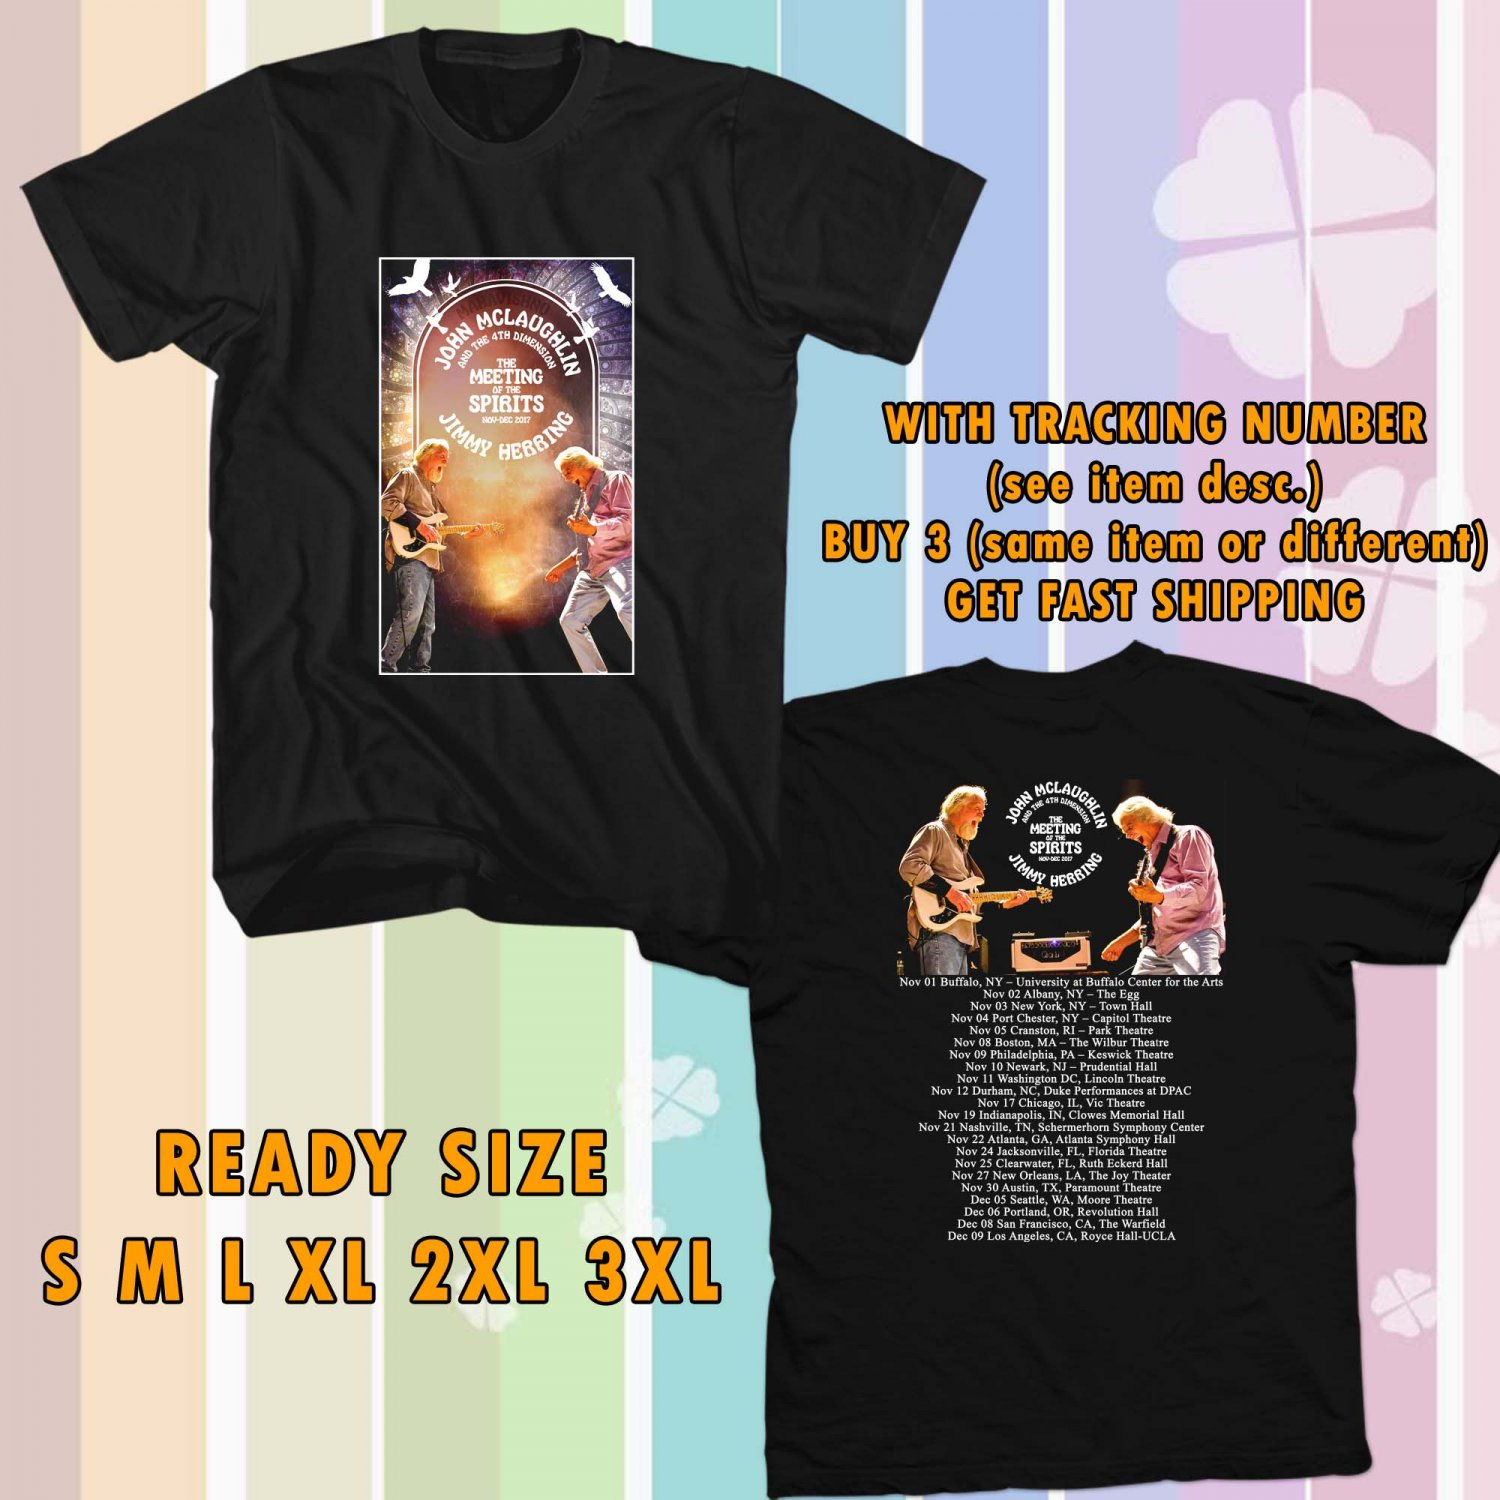 WOW JOHN MCLAUGLIN AND JIMMY HERRING THE MEETING OF SPIRITS TOUR 2017 BLACK TEE S-3XL ASTR